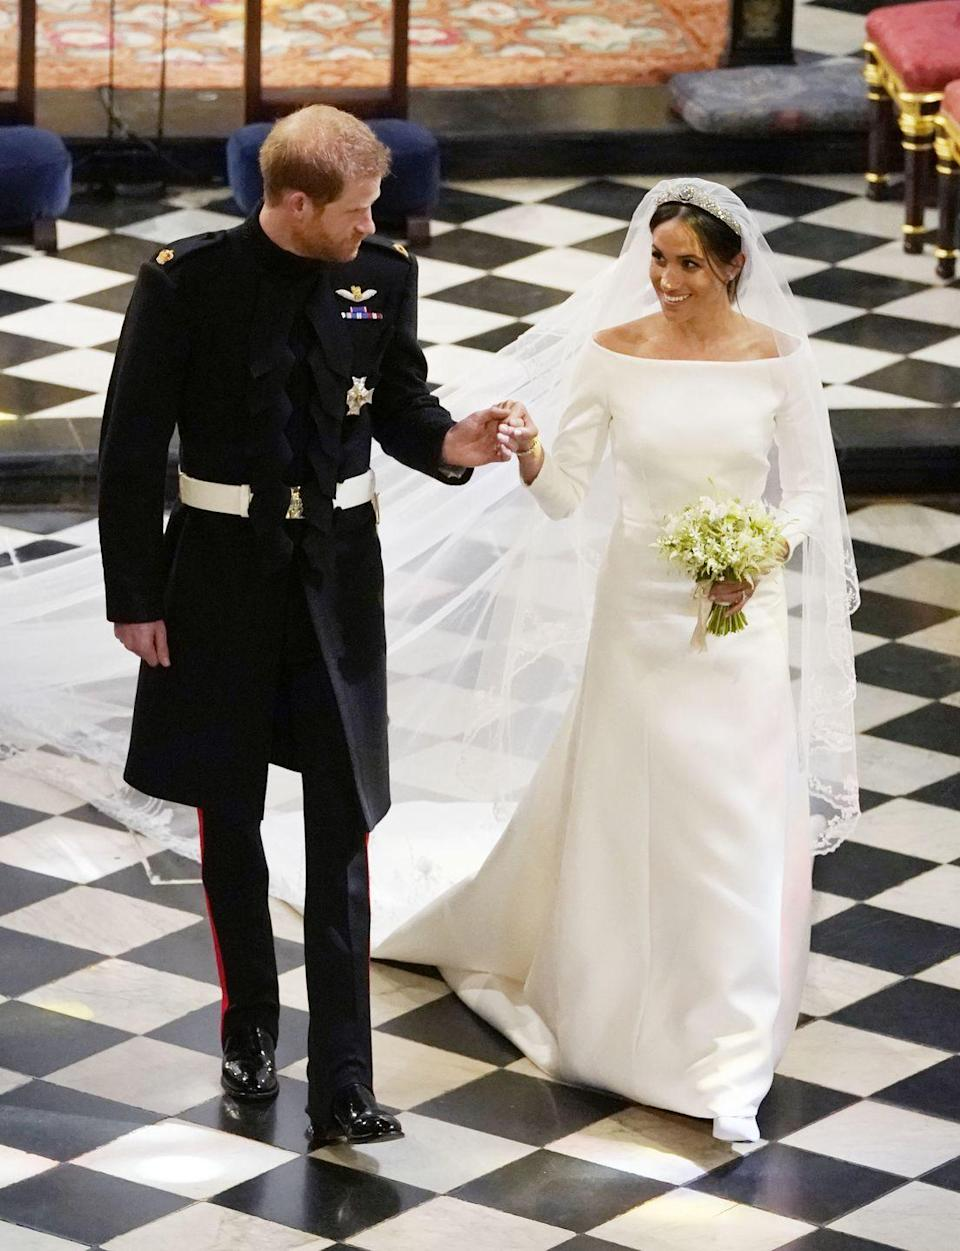 <p>For her royal wedding to Prince Harry, Meghan wore a boat-neck, long-sleeved white dress designed by Clare Waight Keller for Givenchy.</p><p>The veil, in particular, had a symbolic meaning behind it that relates to Prince Harry's appointment as Commonwealth Youth Ambassador. It featured a unique flora from every Commonwealth country, is five metres long and is made from silk tulle with a trim of hand-embroidered flowers.</p><p>The Queen lent Markle Queen Mary's diamond bandeau tiara made in 1932, while the brooch at its centre was created in 1893.</p>